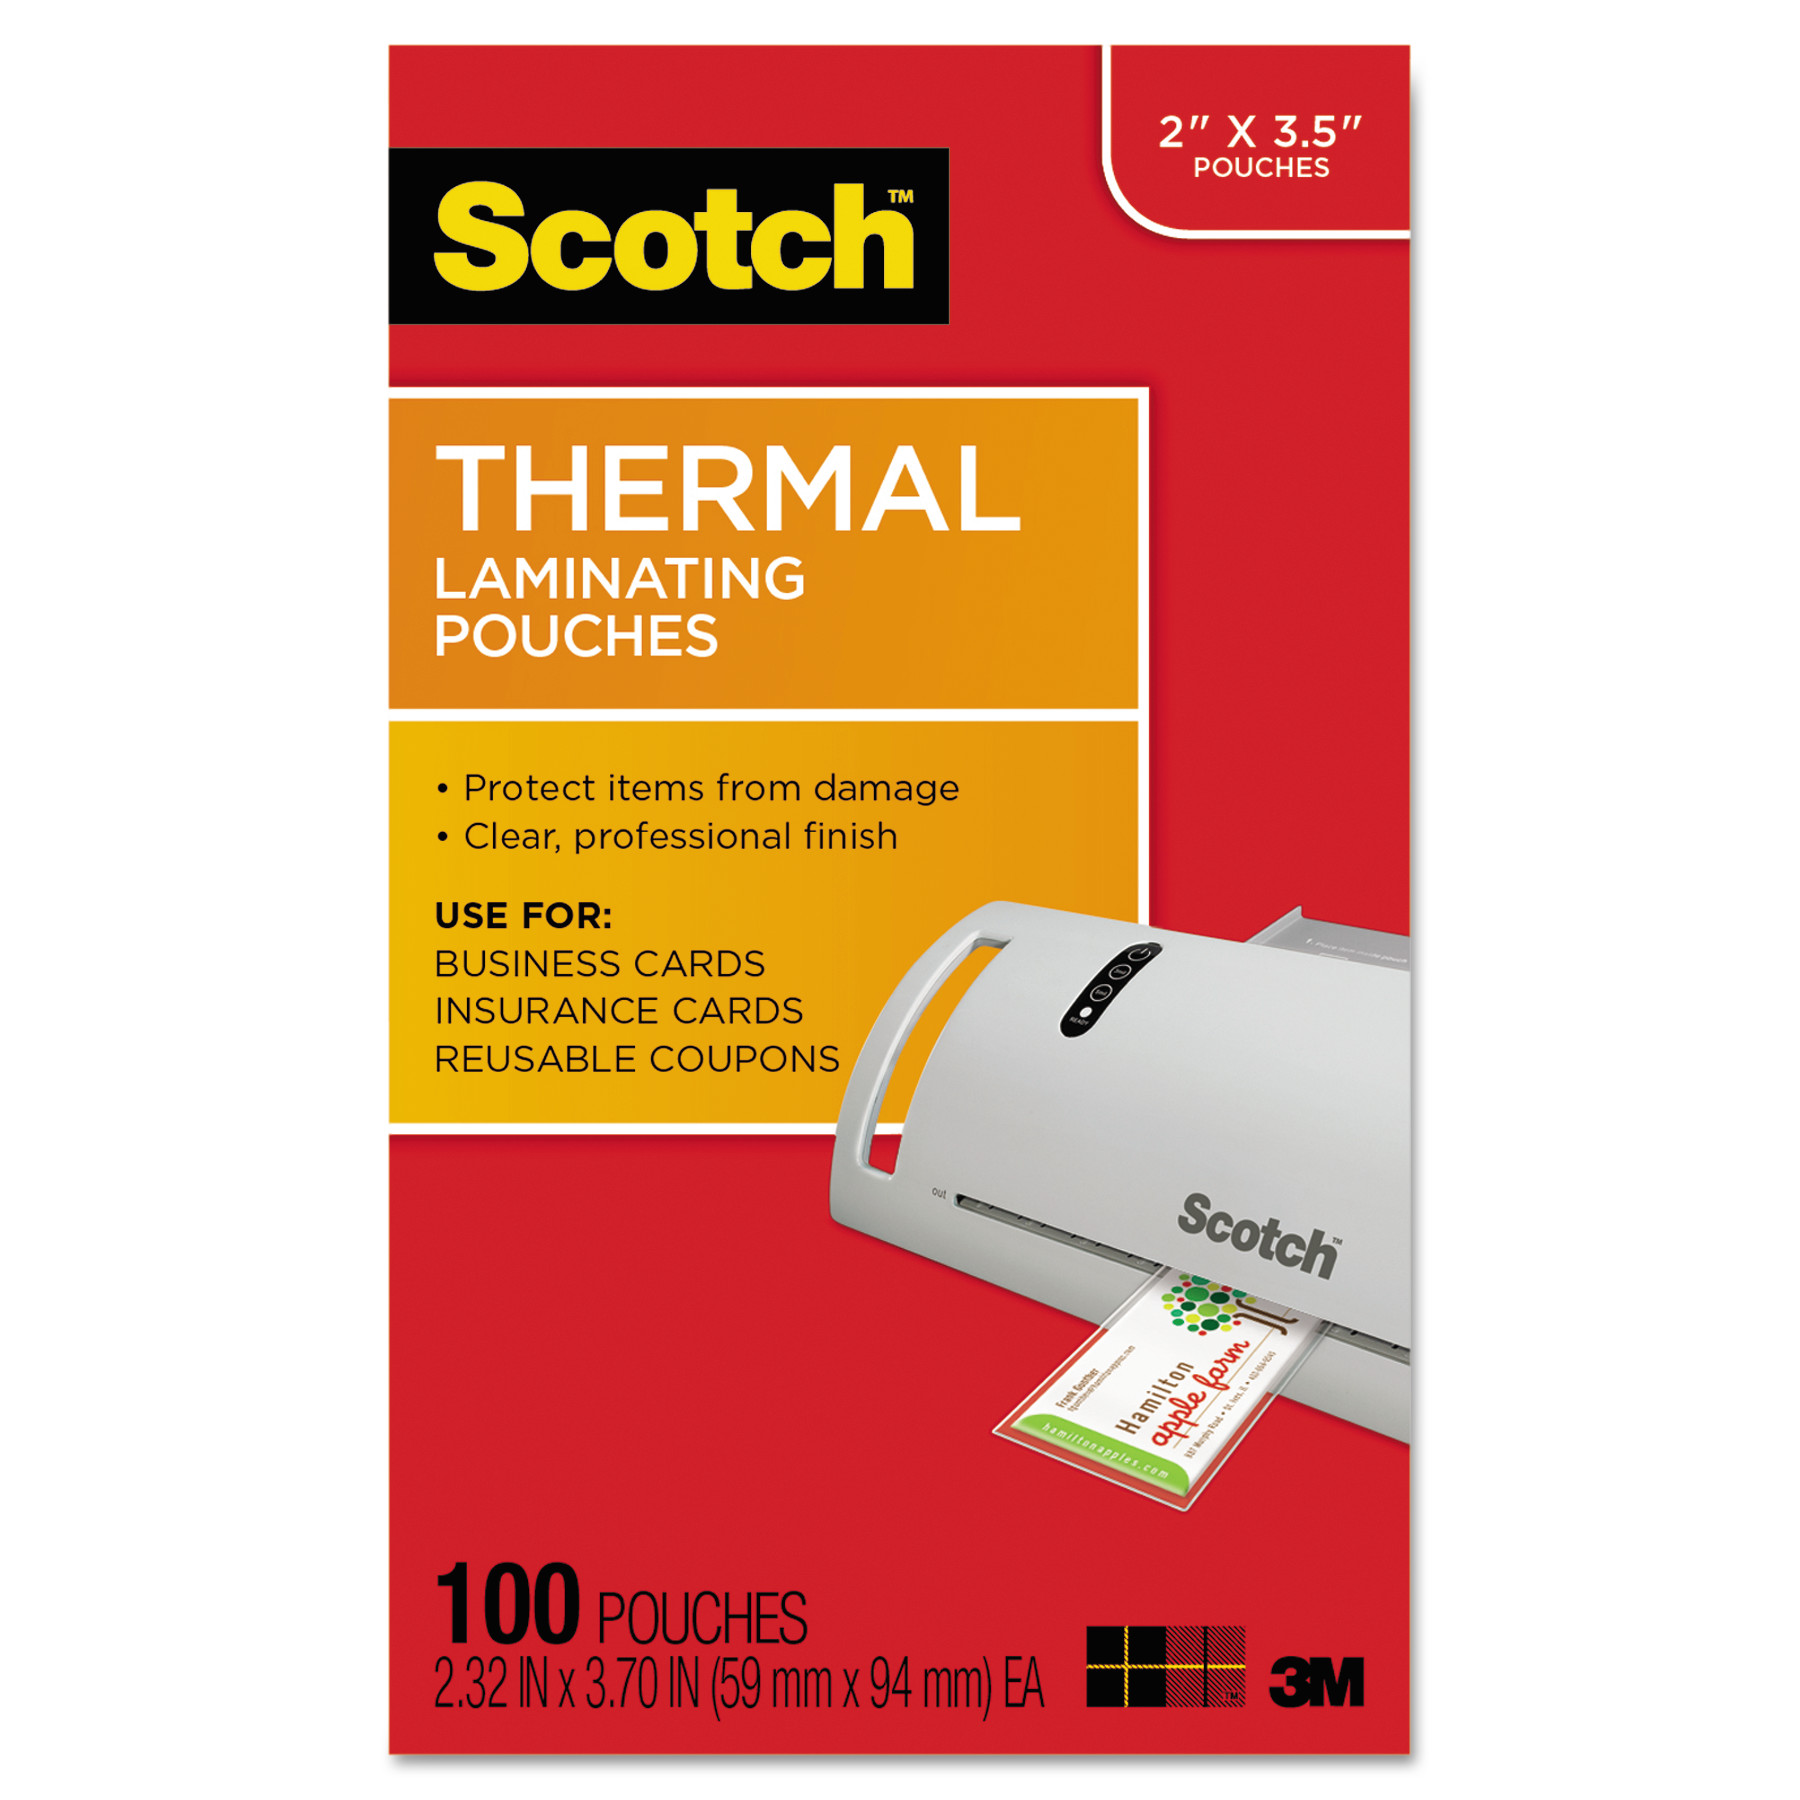 Scotch business card size thermal laminating pouches 5 mil 3 34 x scotch business card size thermal laminating pouches 5 mil 3 34 x reheart Images